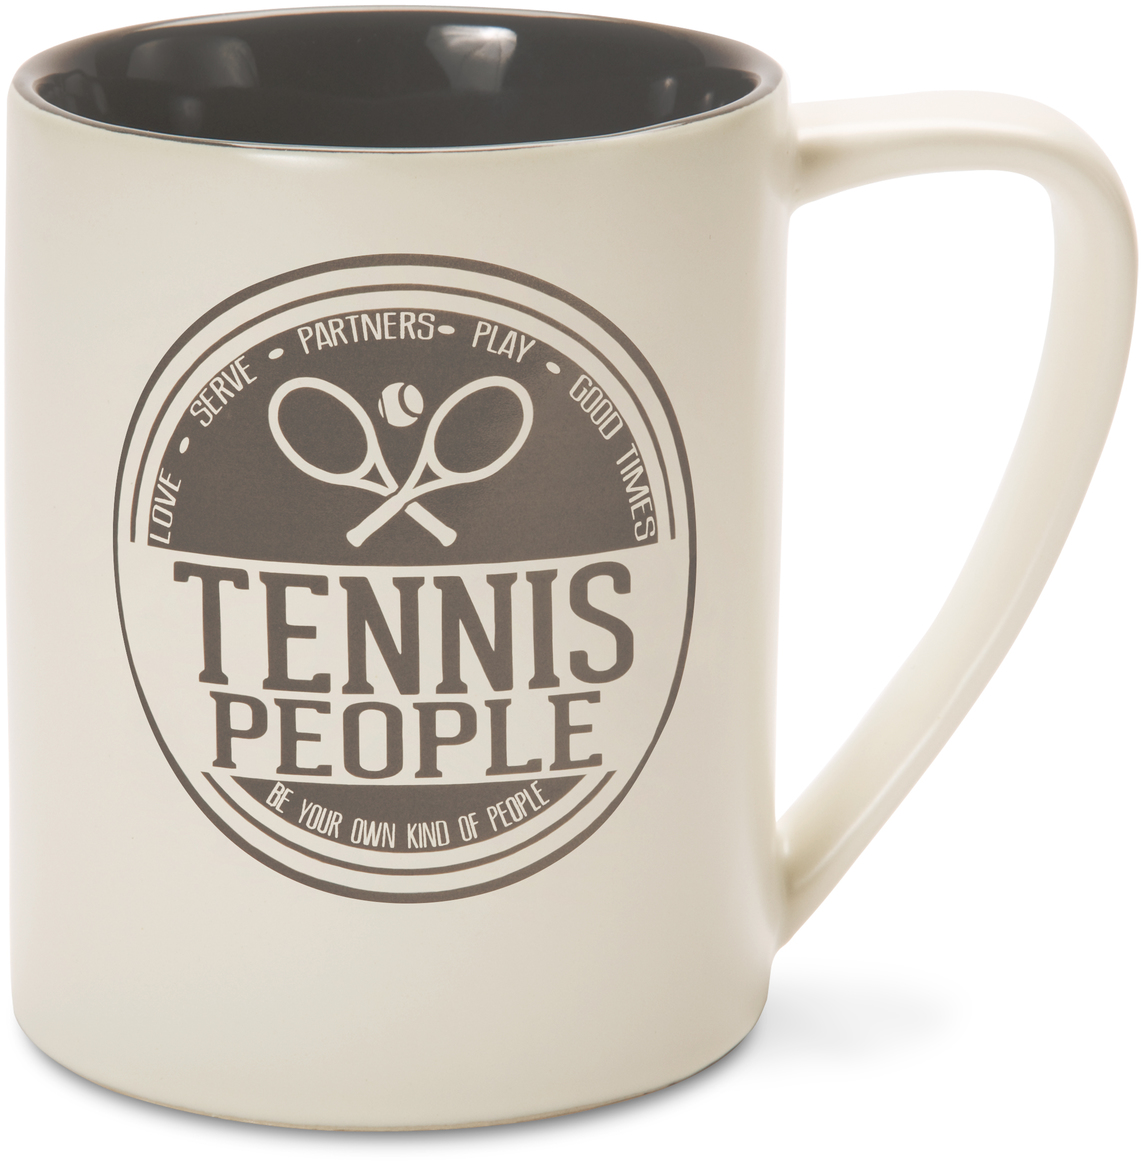 Tennis People by We People - Tennis People - 18 oz Mug